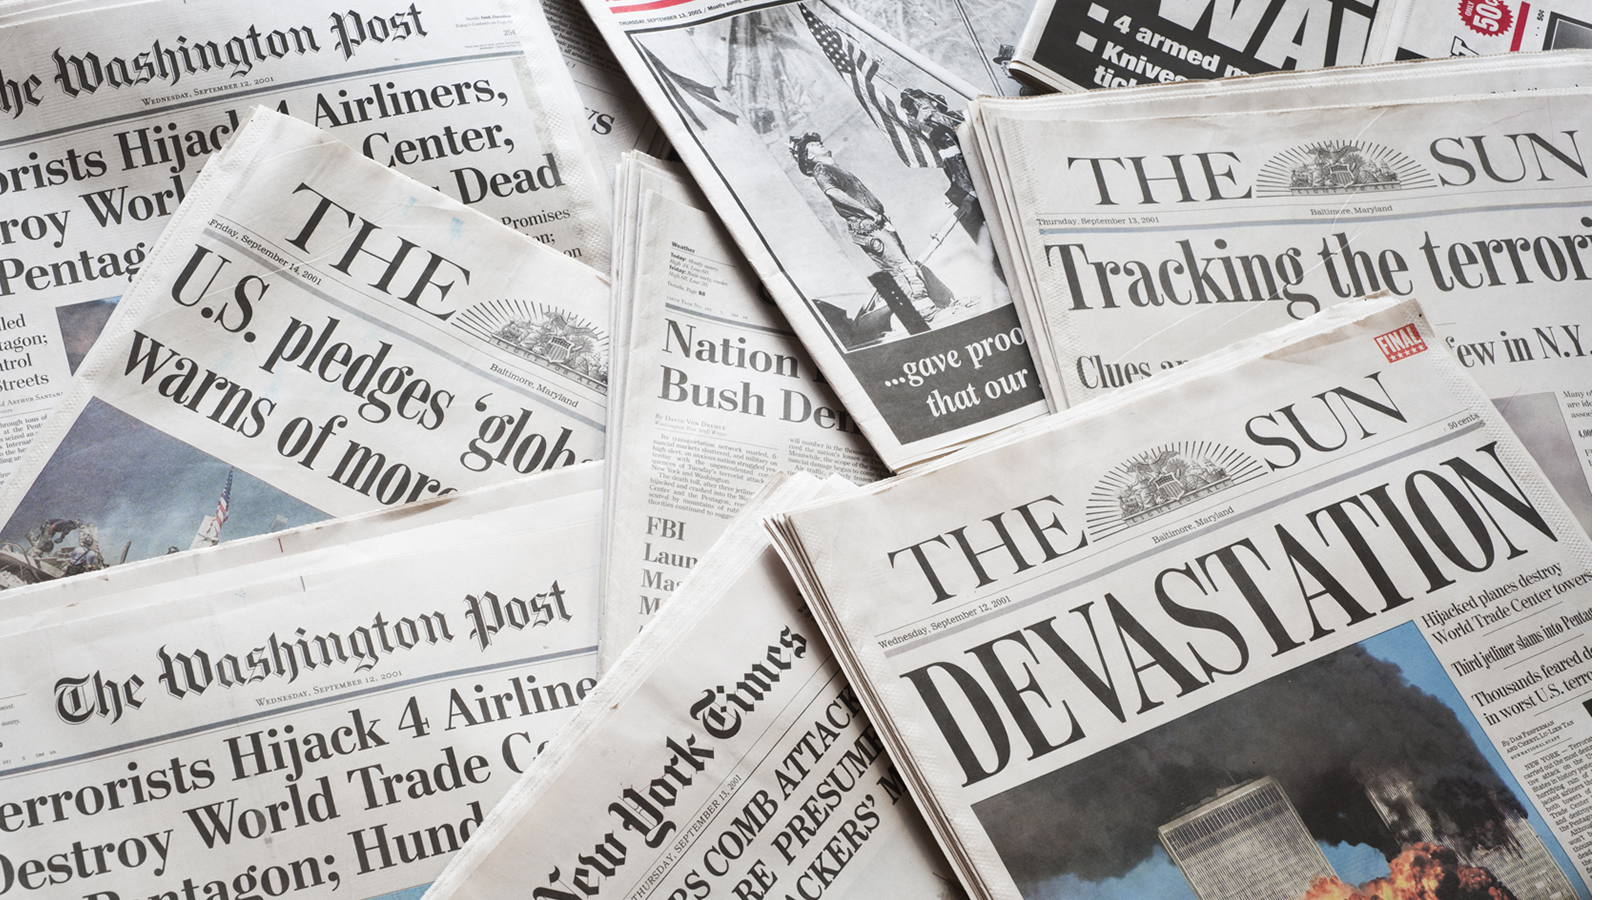 Newspapers with Headlines about the September 11, 2001 Terrorist Attacks